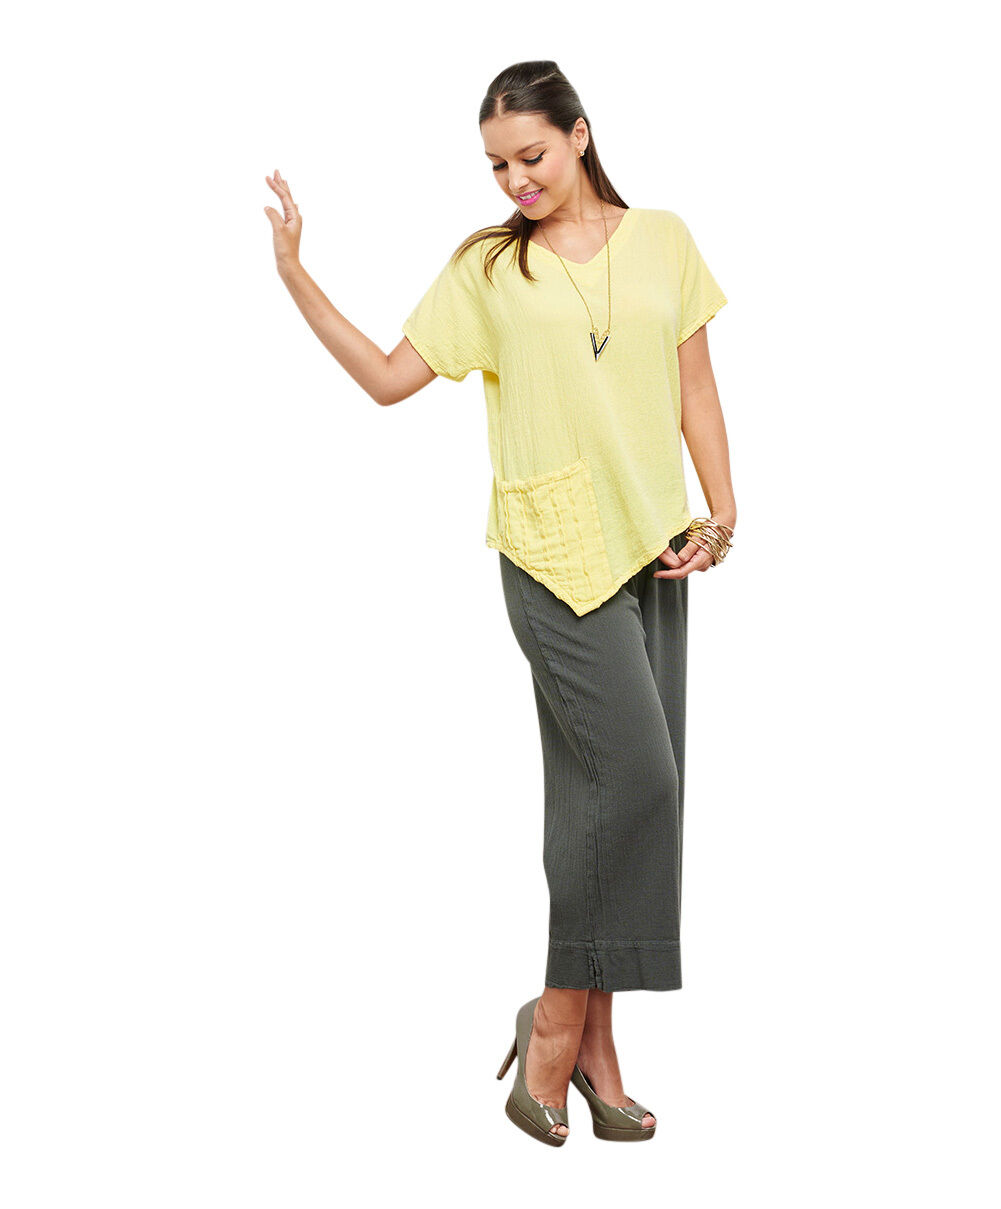 Oh My Gauze Polly Blouse Lagenlook Tunic Top 100% Cotton